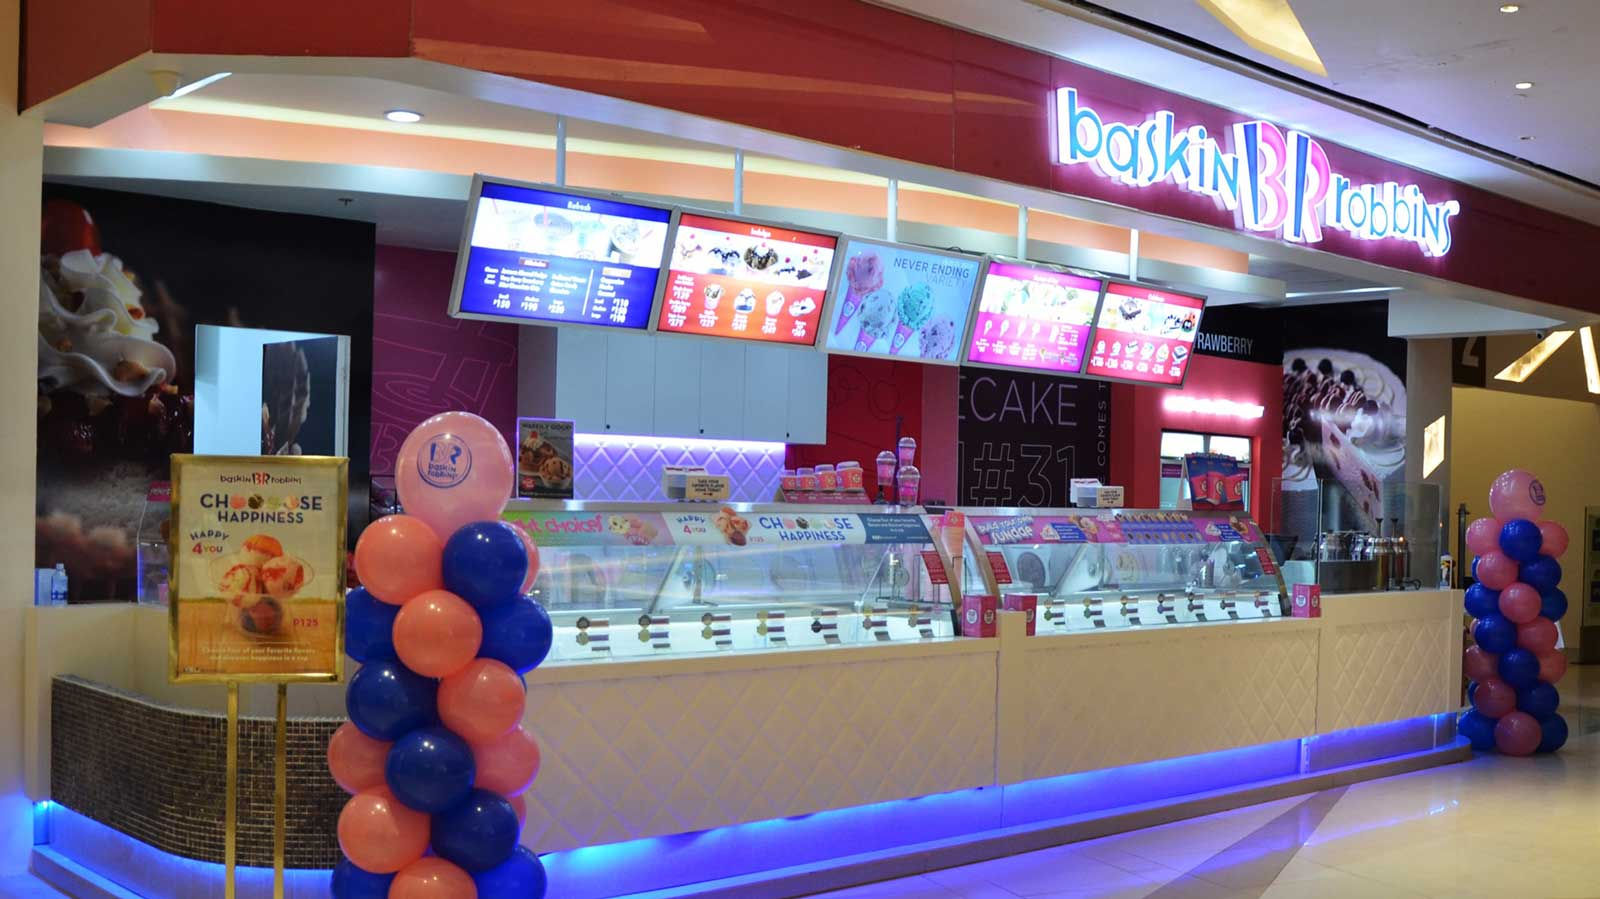 Baskin-Robbins is now scooping in Uptown Place Mall, Taguig